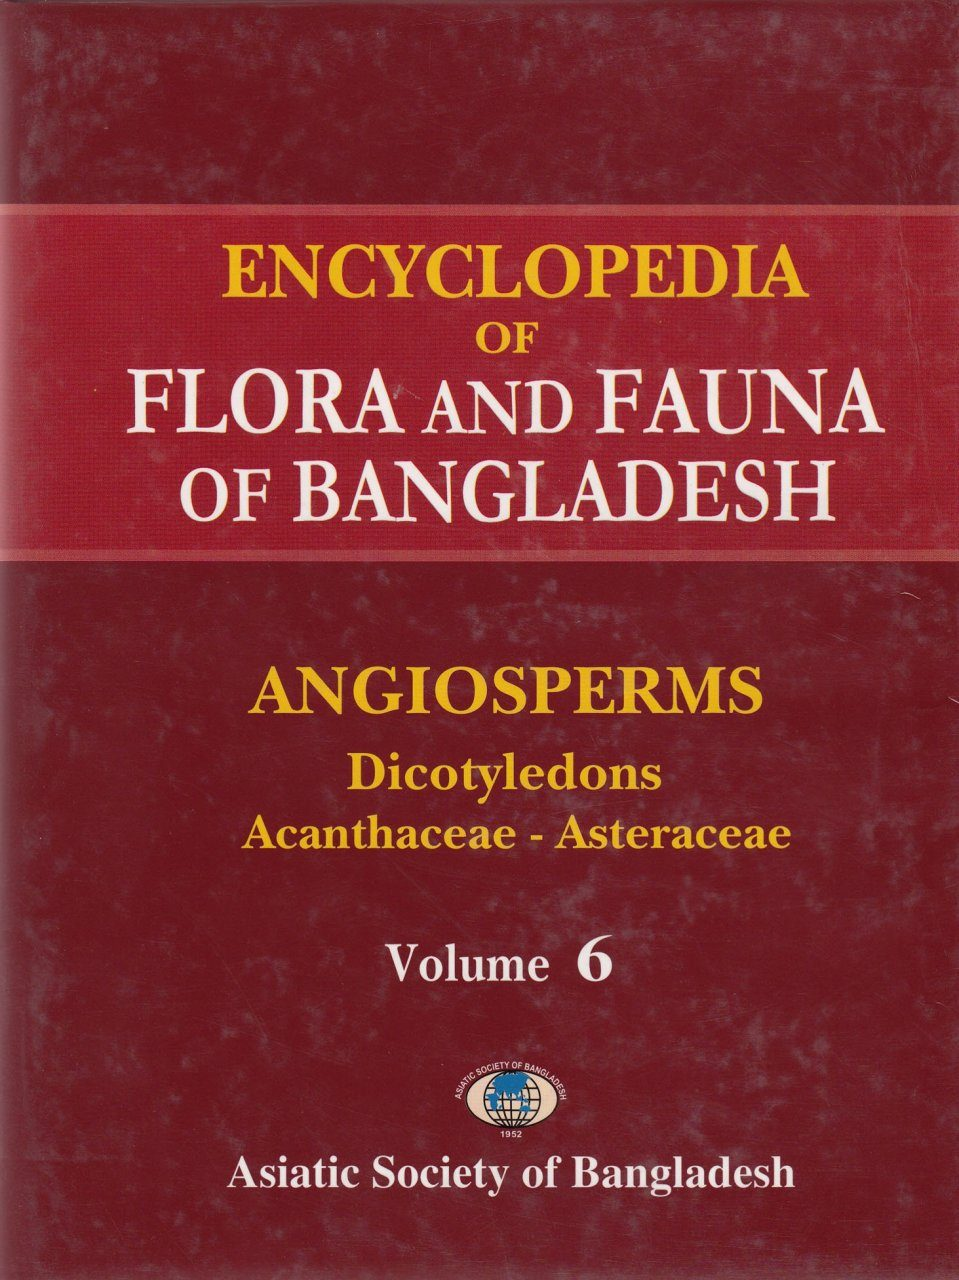 Encyclopedia of Flora and Fauna of Bangladesh, Volume 6: Angiosperms: Dicotyledons: Acanthaceae-Asteraceae